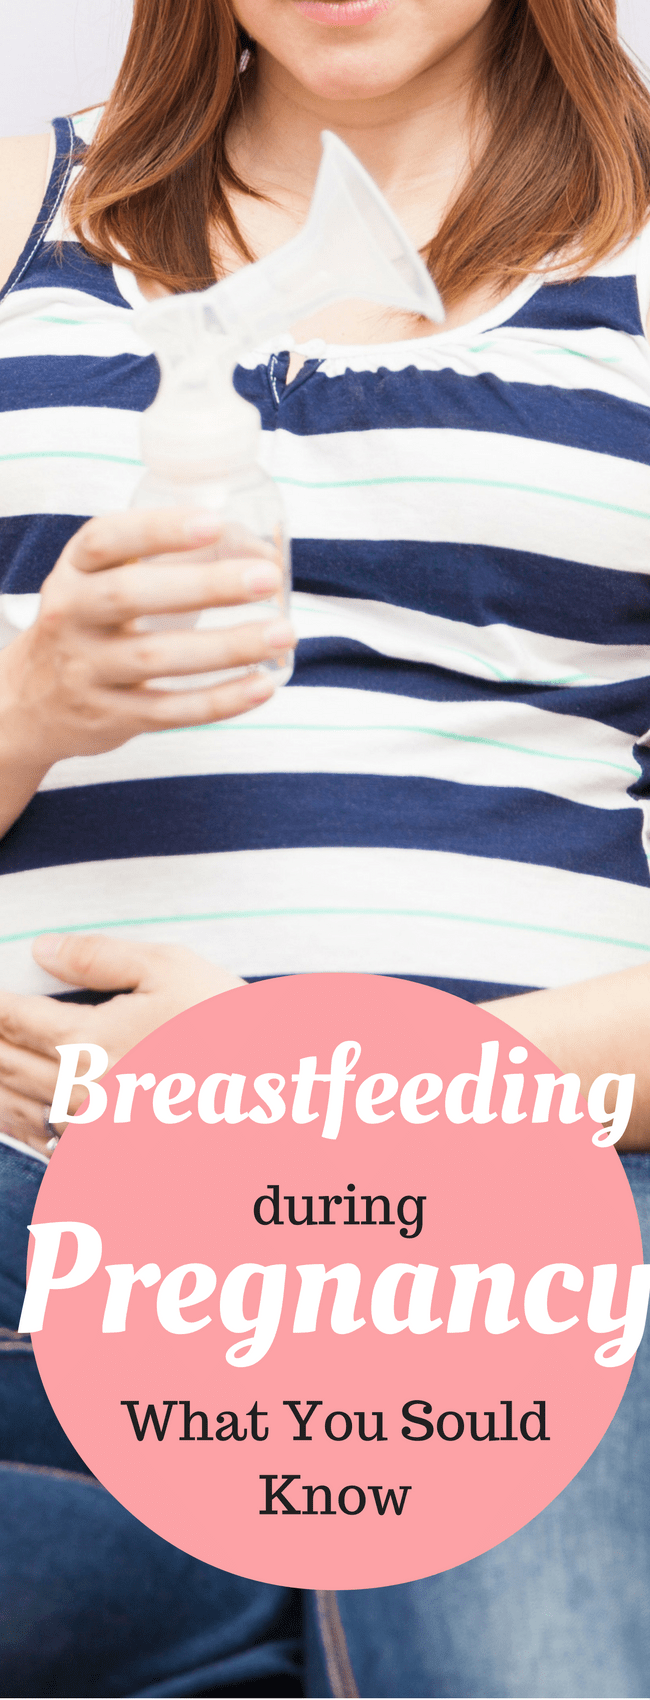 Breastfeeding During Pregnancy What You Should Know-2663